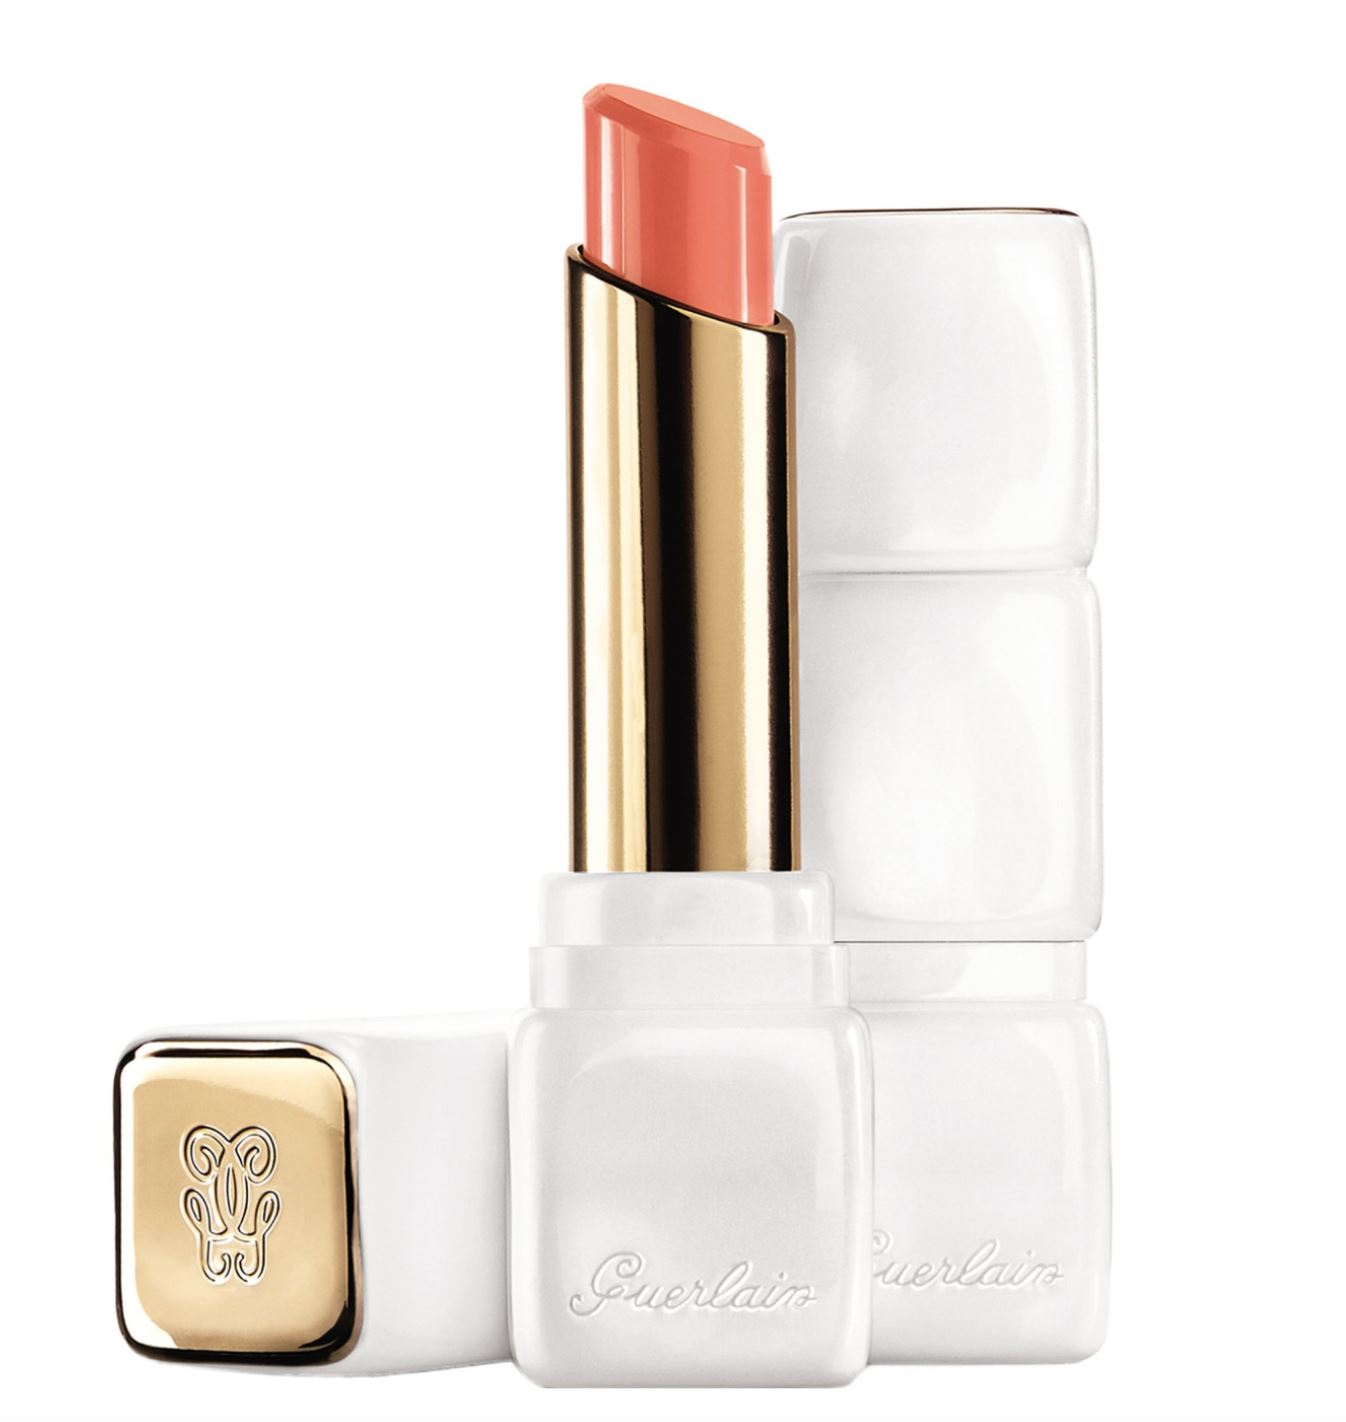 Guerlain Kiss Kiss Lip Balm Collector